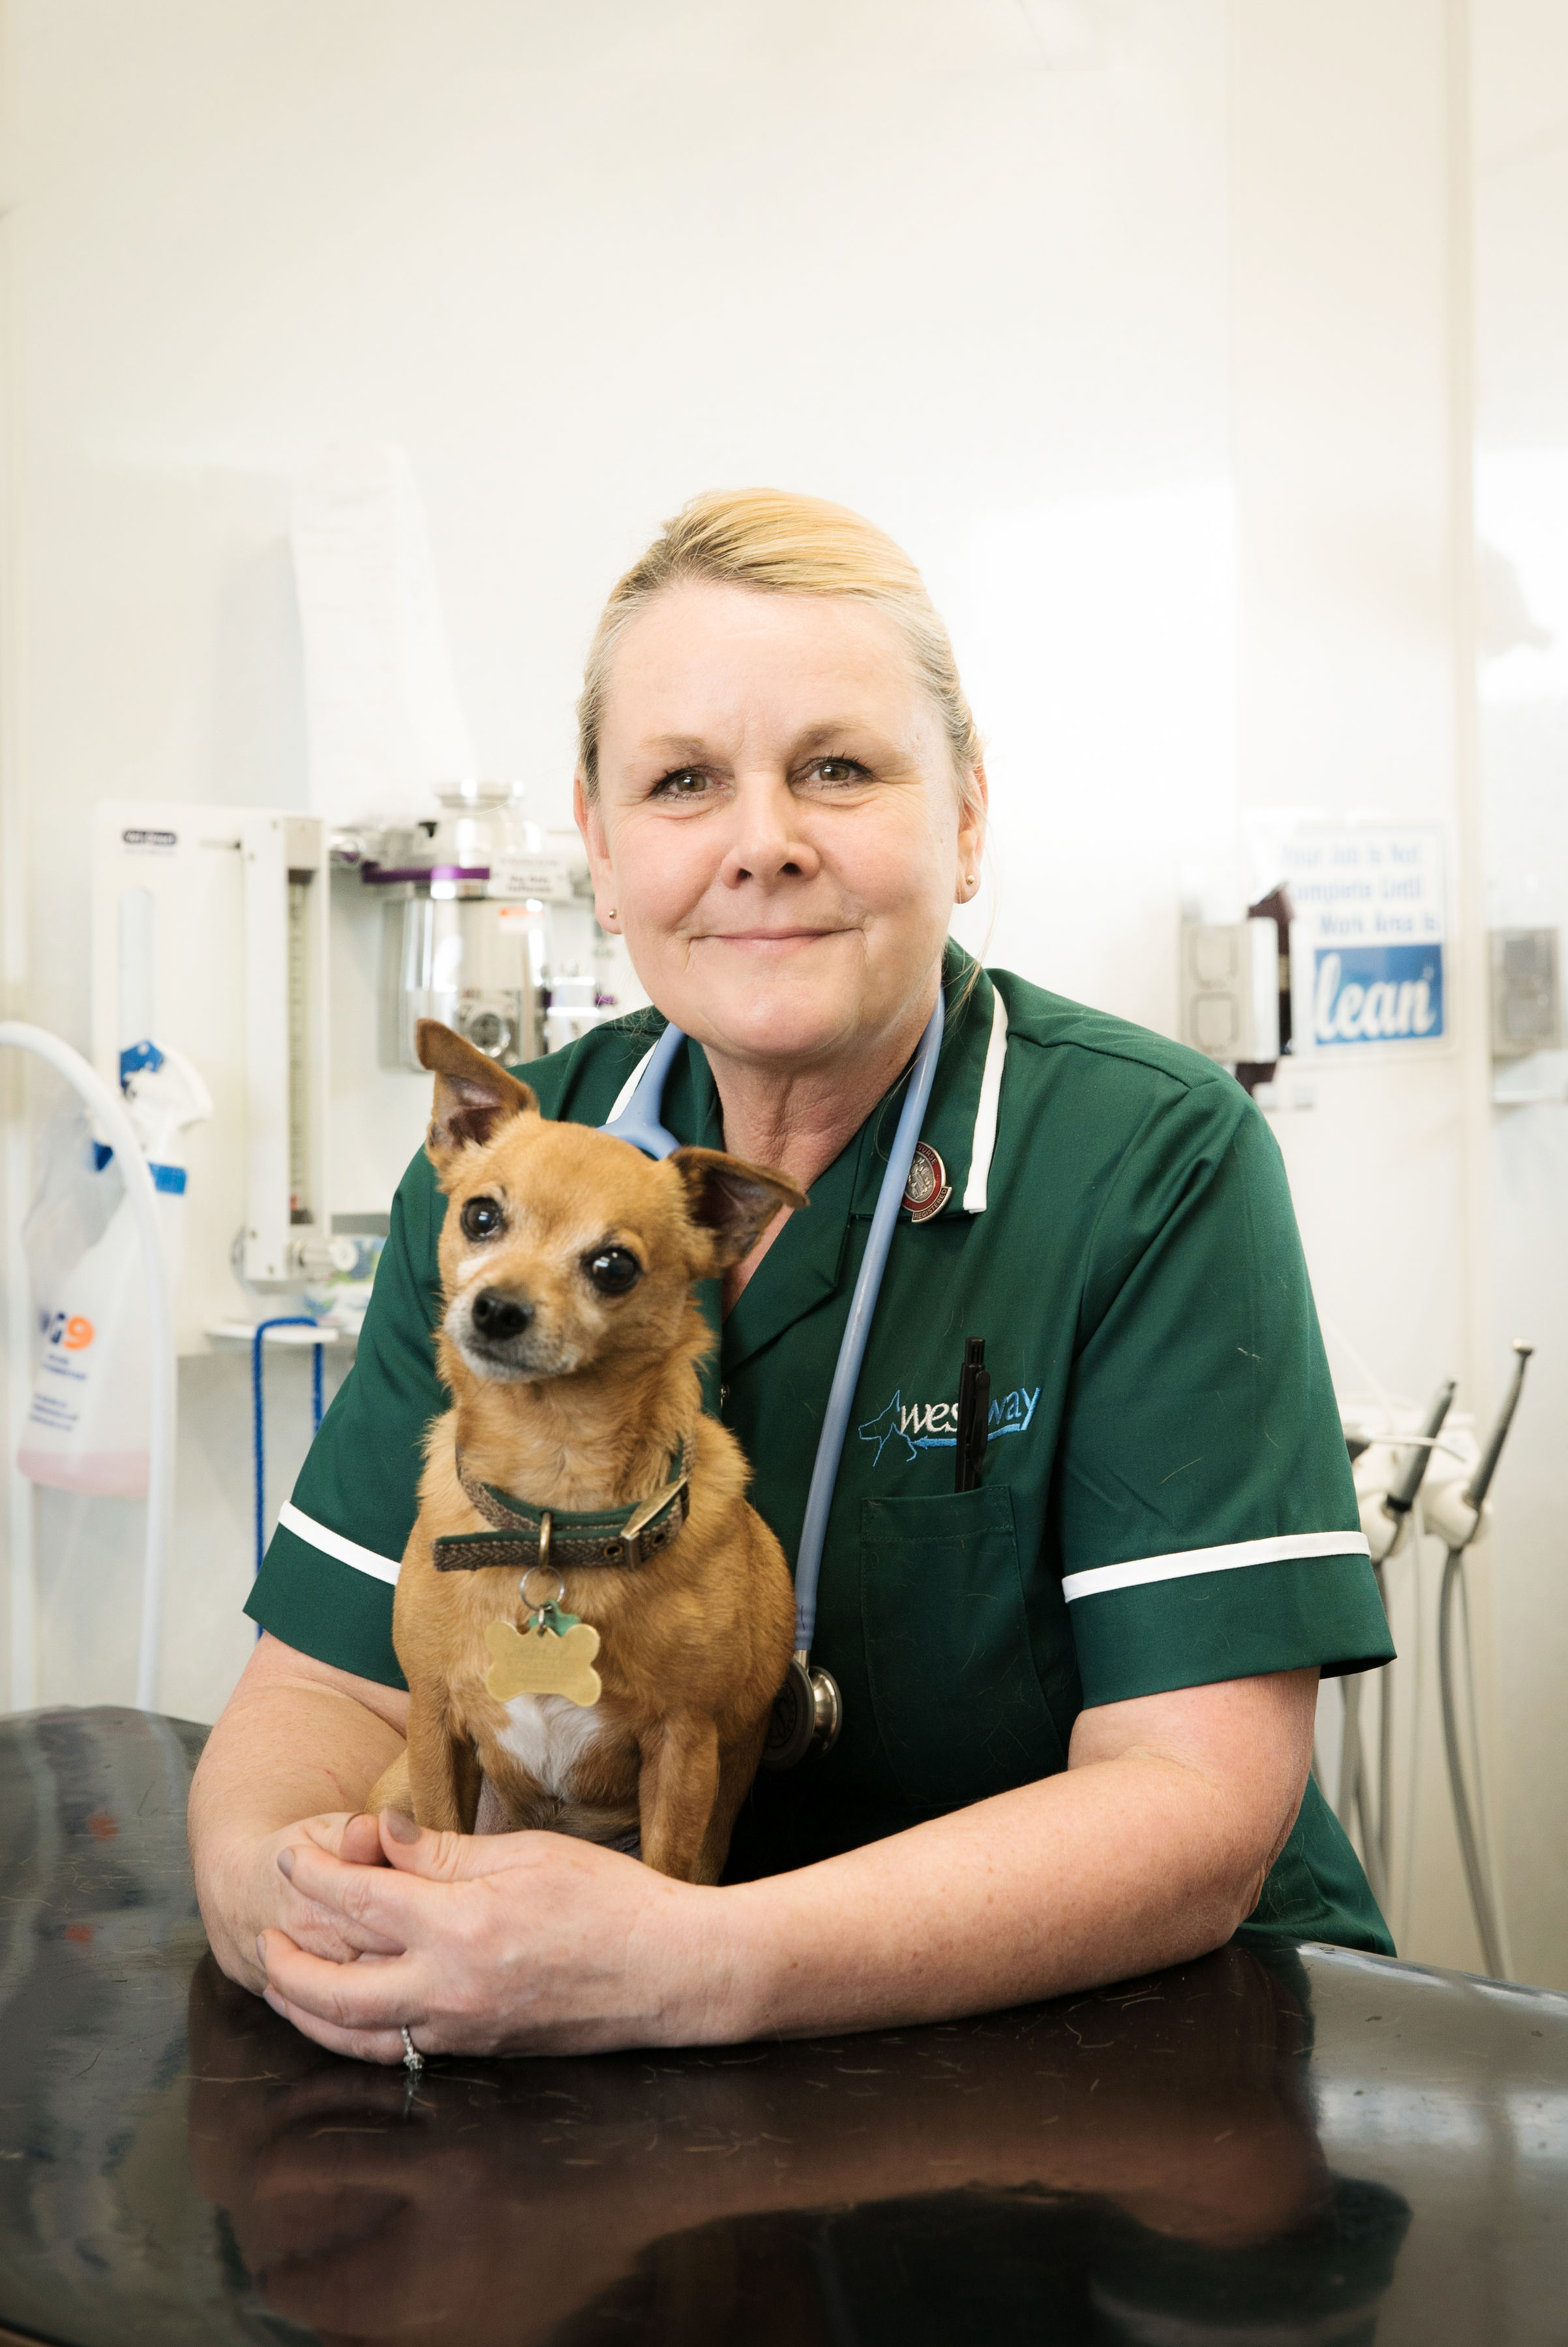 Westway Veterinary Group, Shiney Row - Houghton le Spring, Tyne and Wear DH4 4QU - 01913 857730 | ShowMeLocal.com